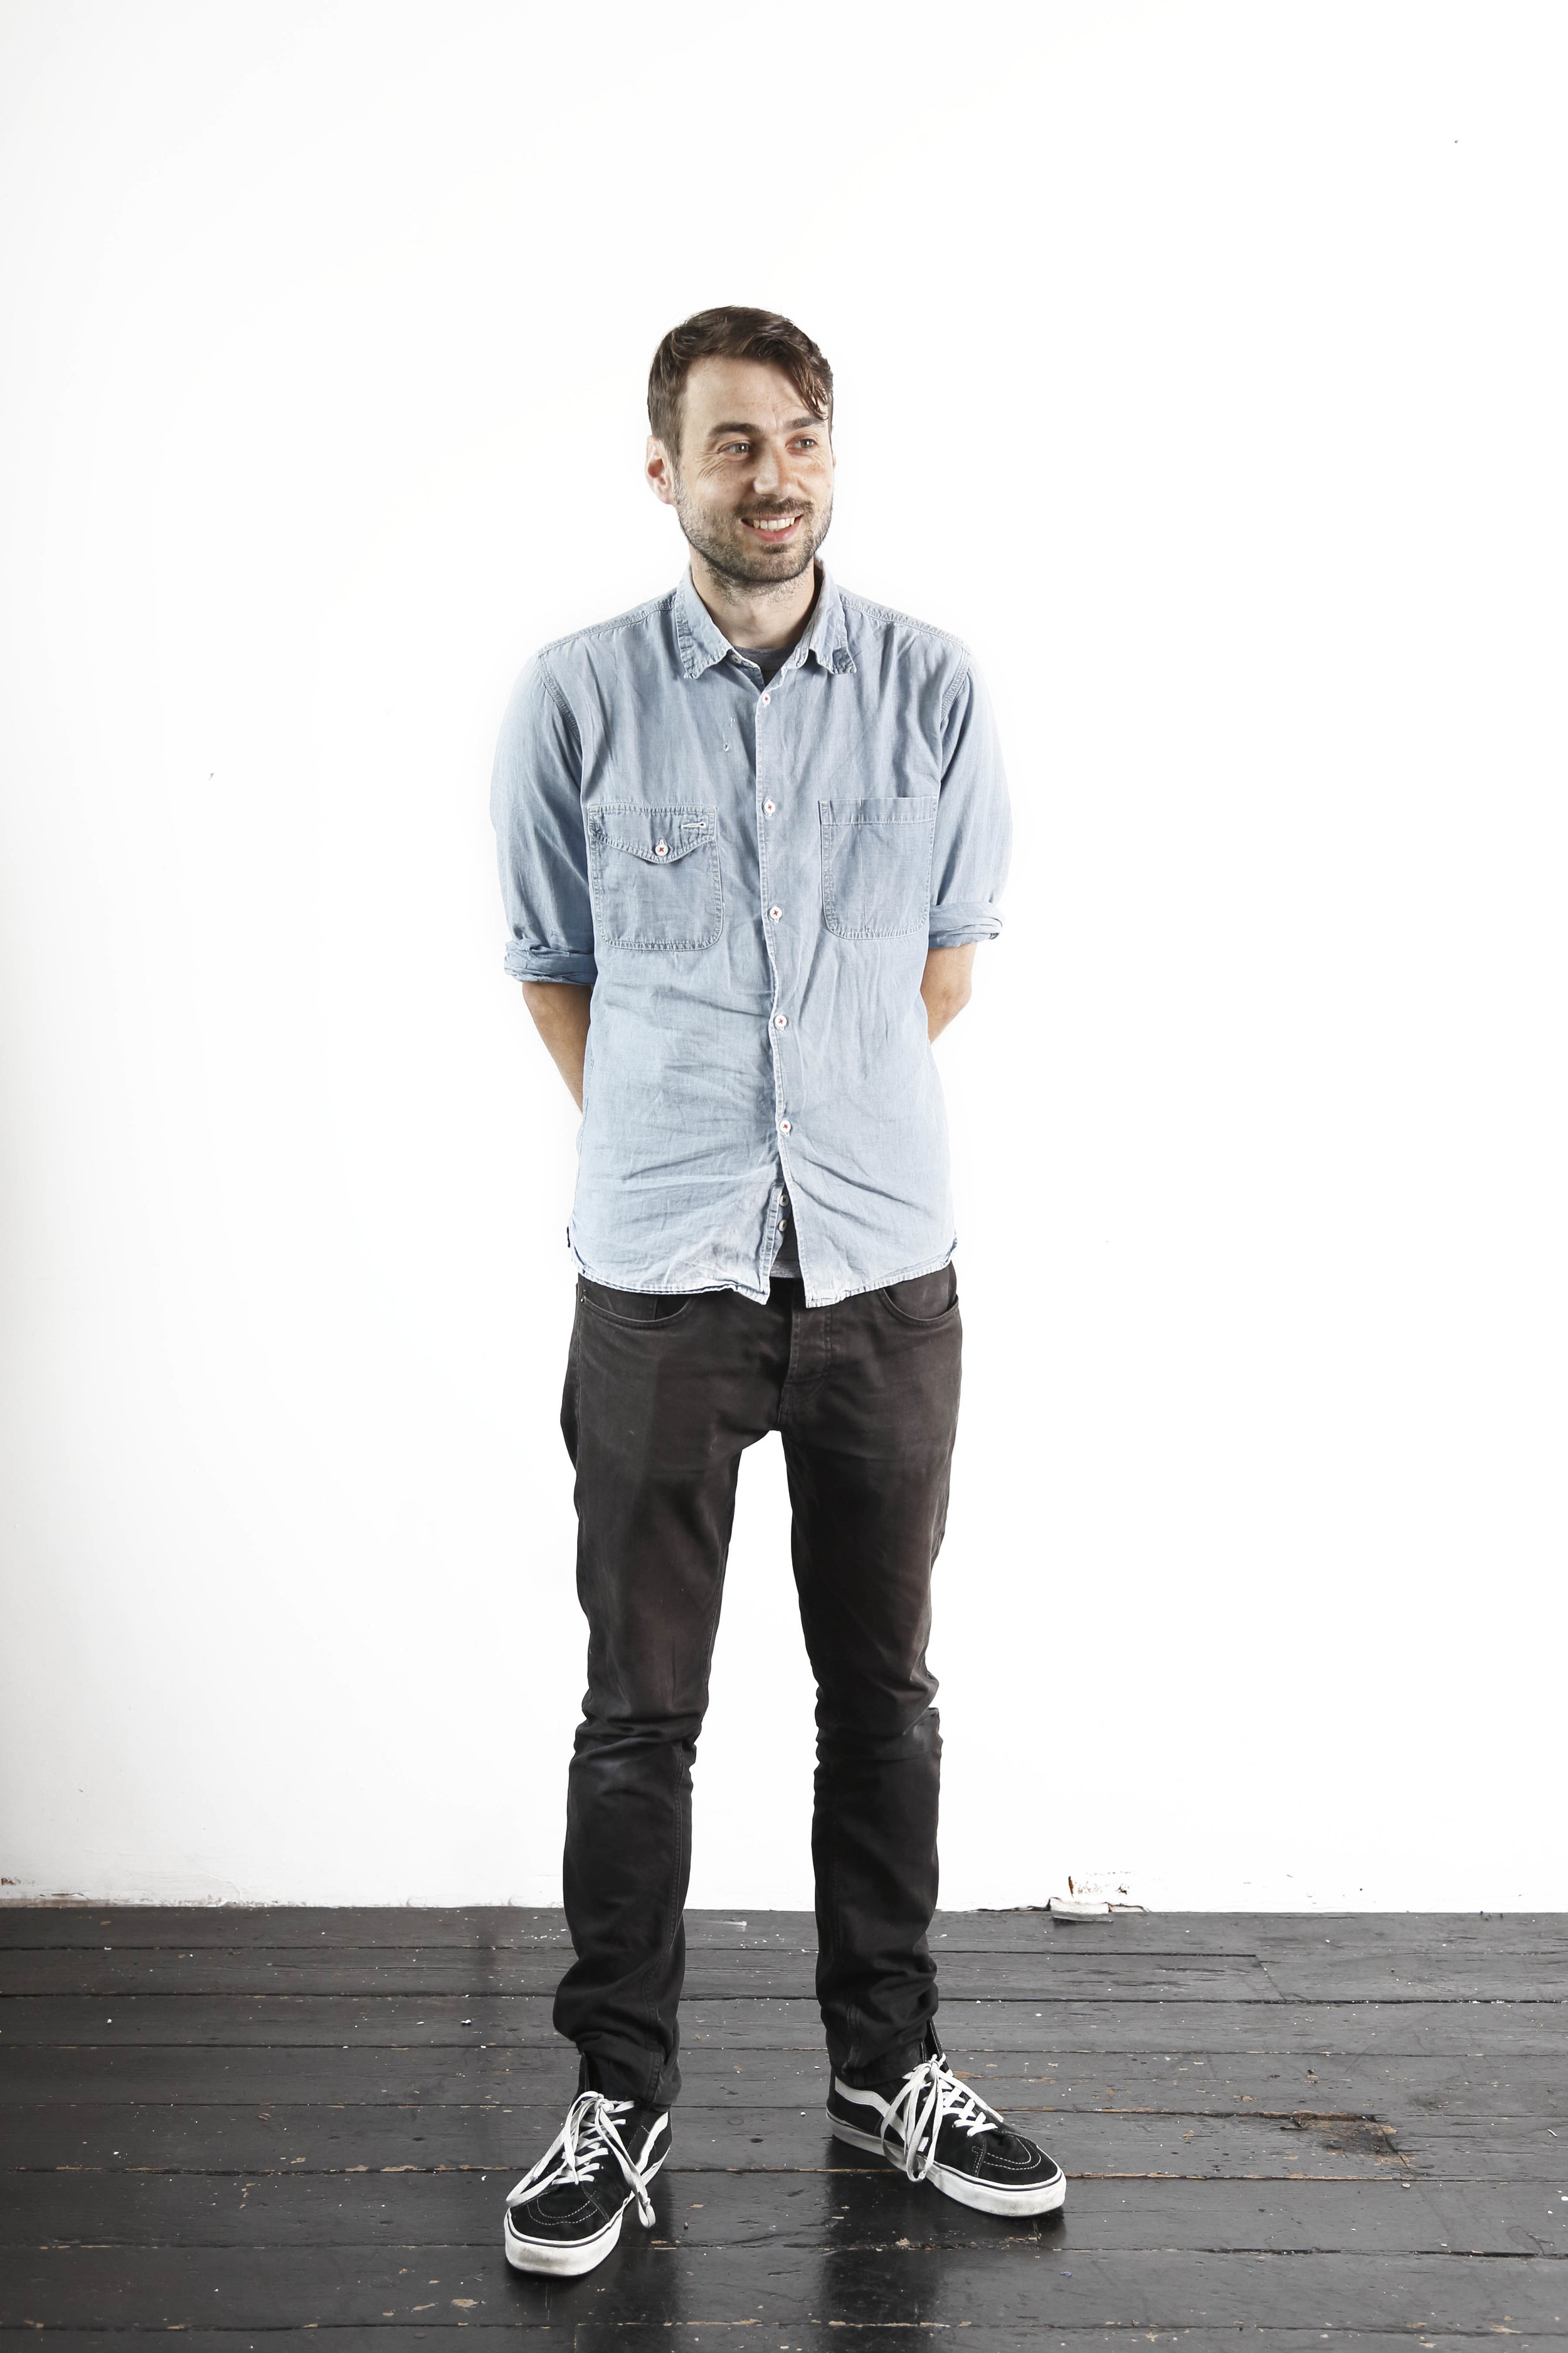 Here's a picture of me standing awkwardly in front of a white wall a couple of years ago. I look a bit older now.